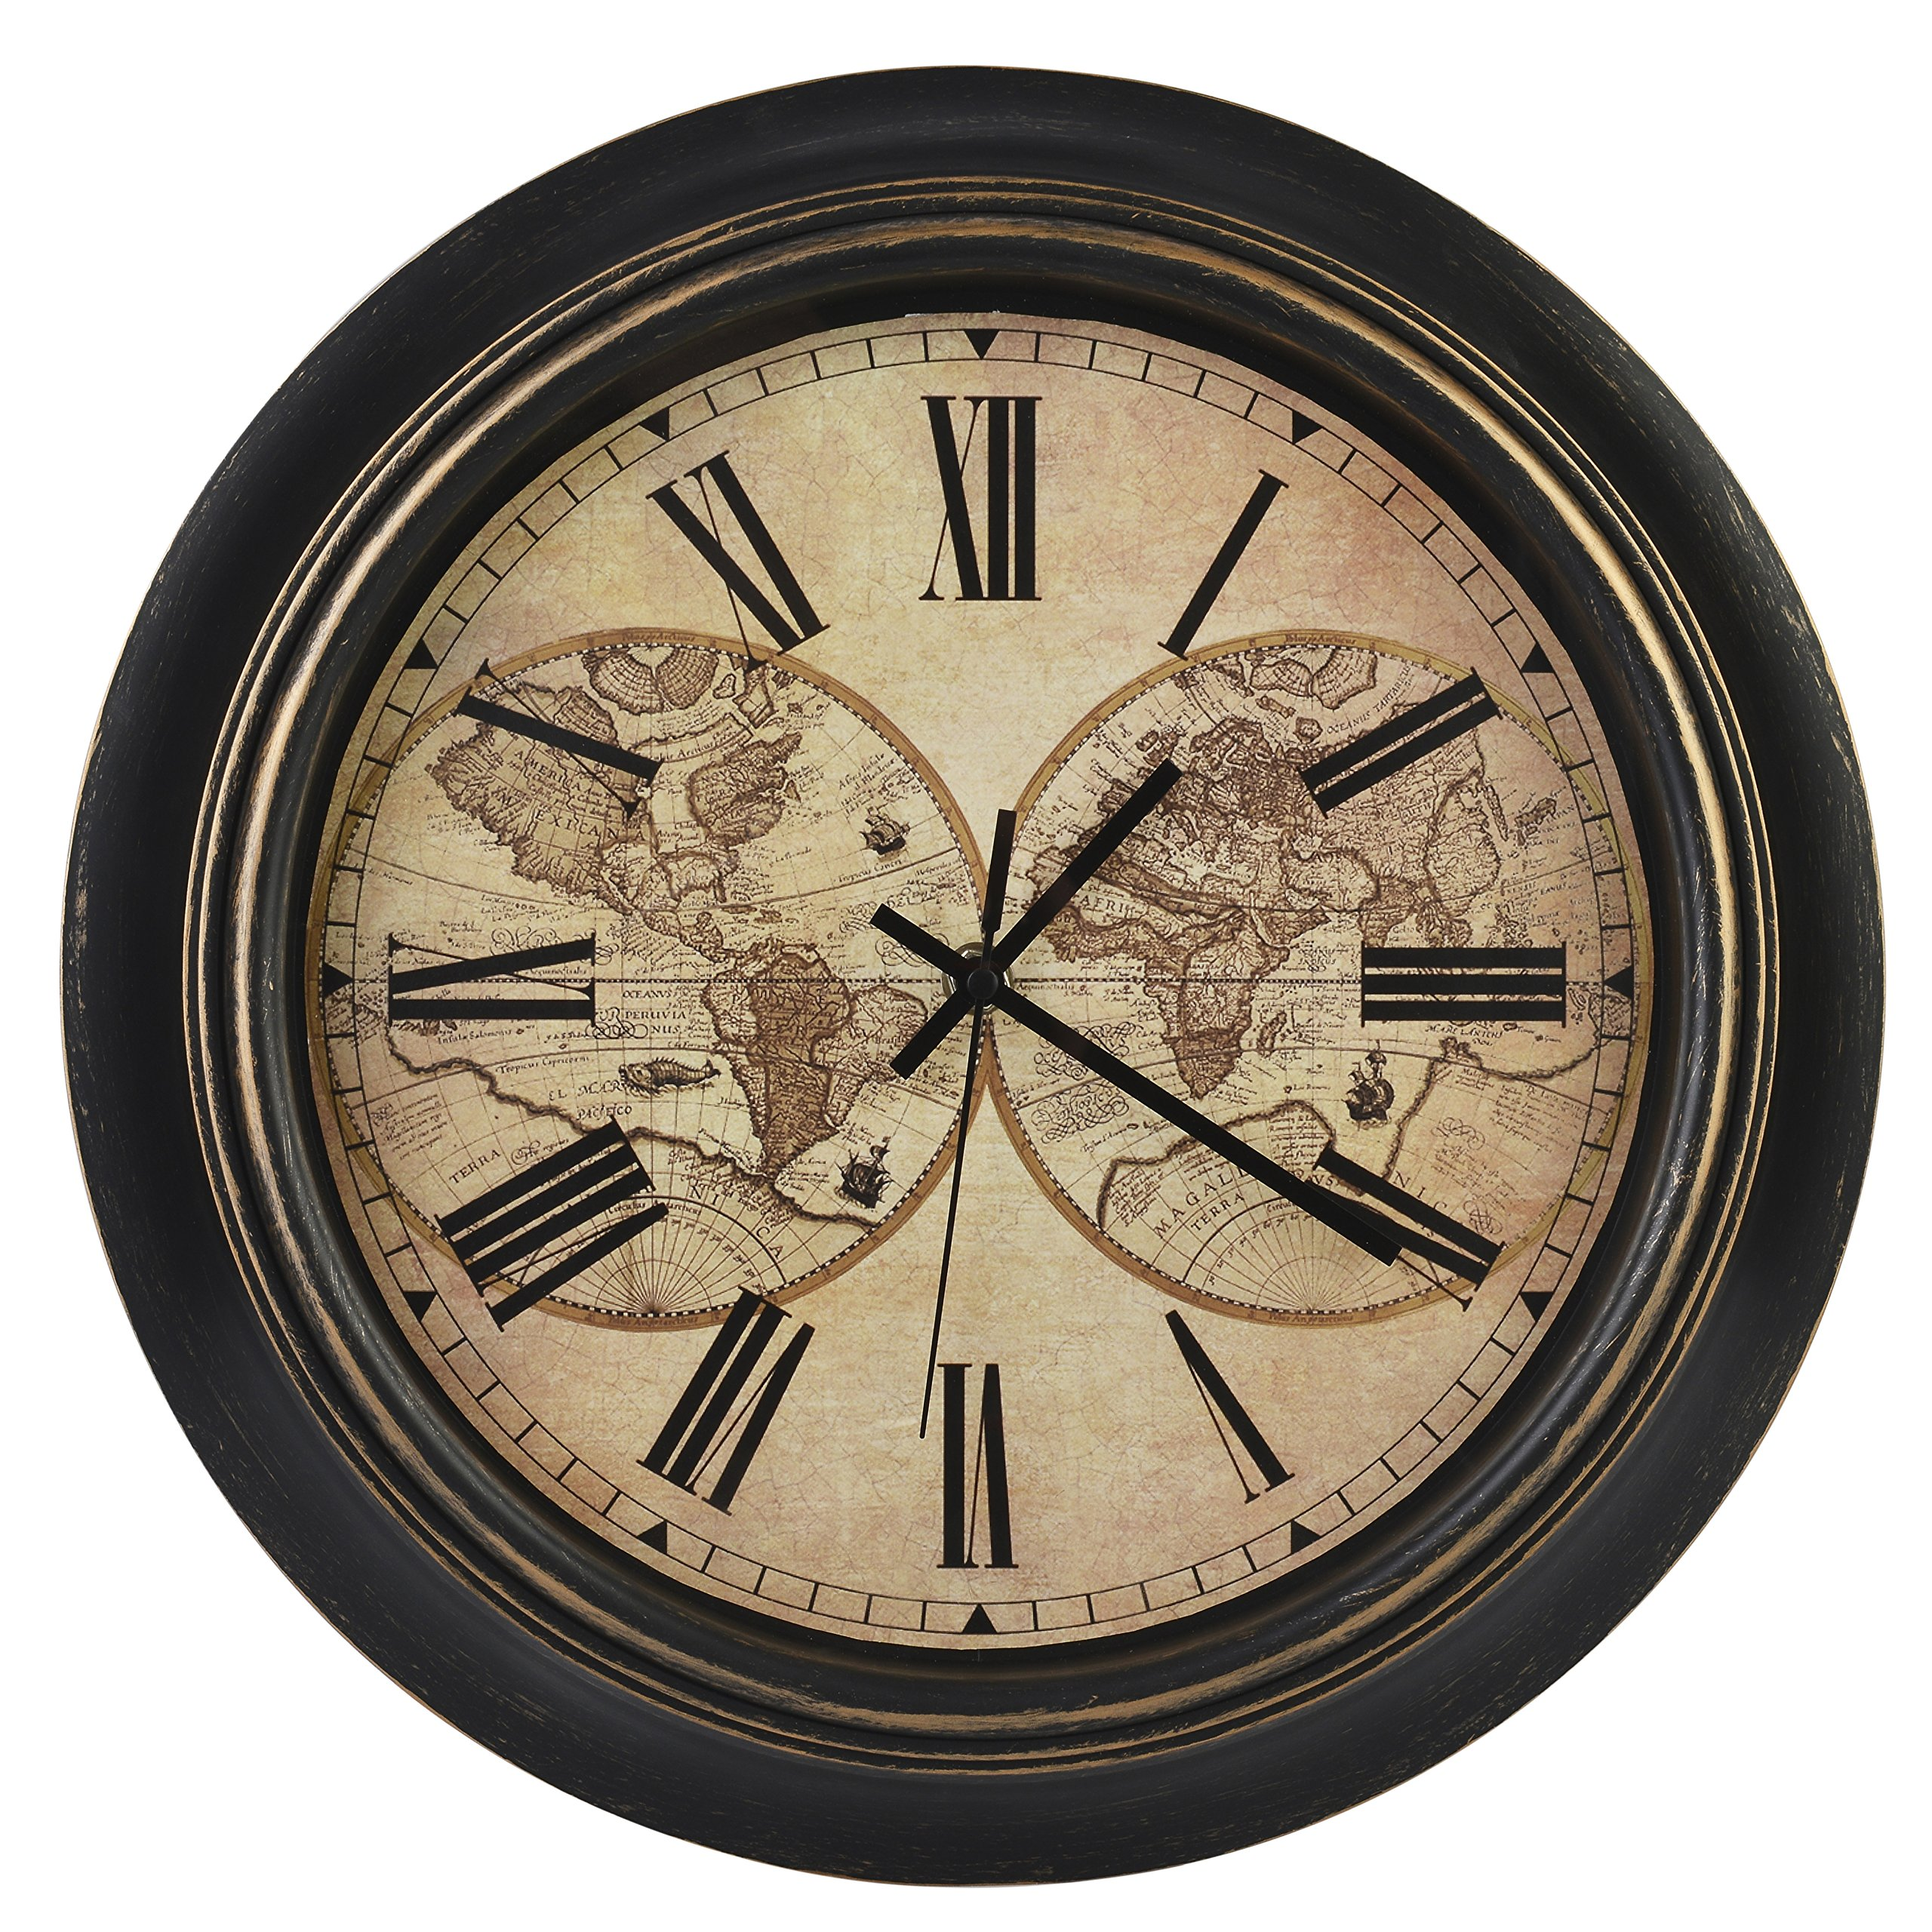 Old Oak 14-Inch Silent Non-Ticking Battery Operated Decorative Wall Clock with Classic Retro World Map Roman Numerals